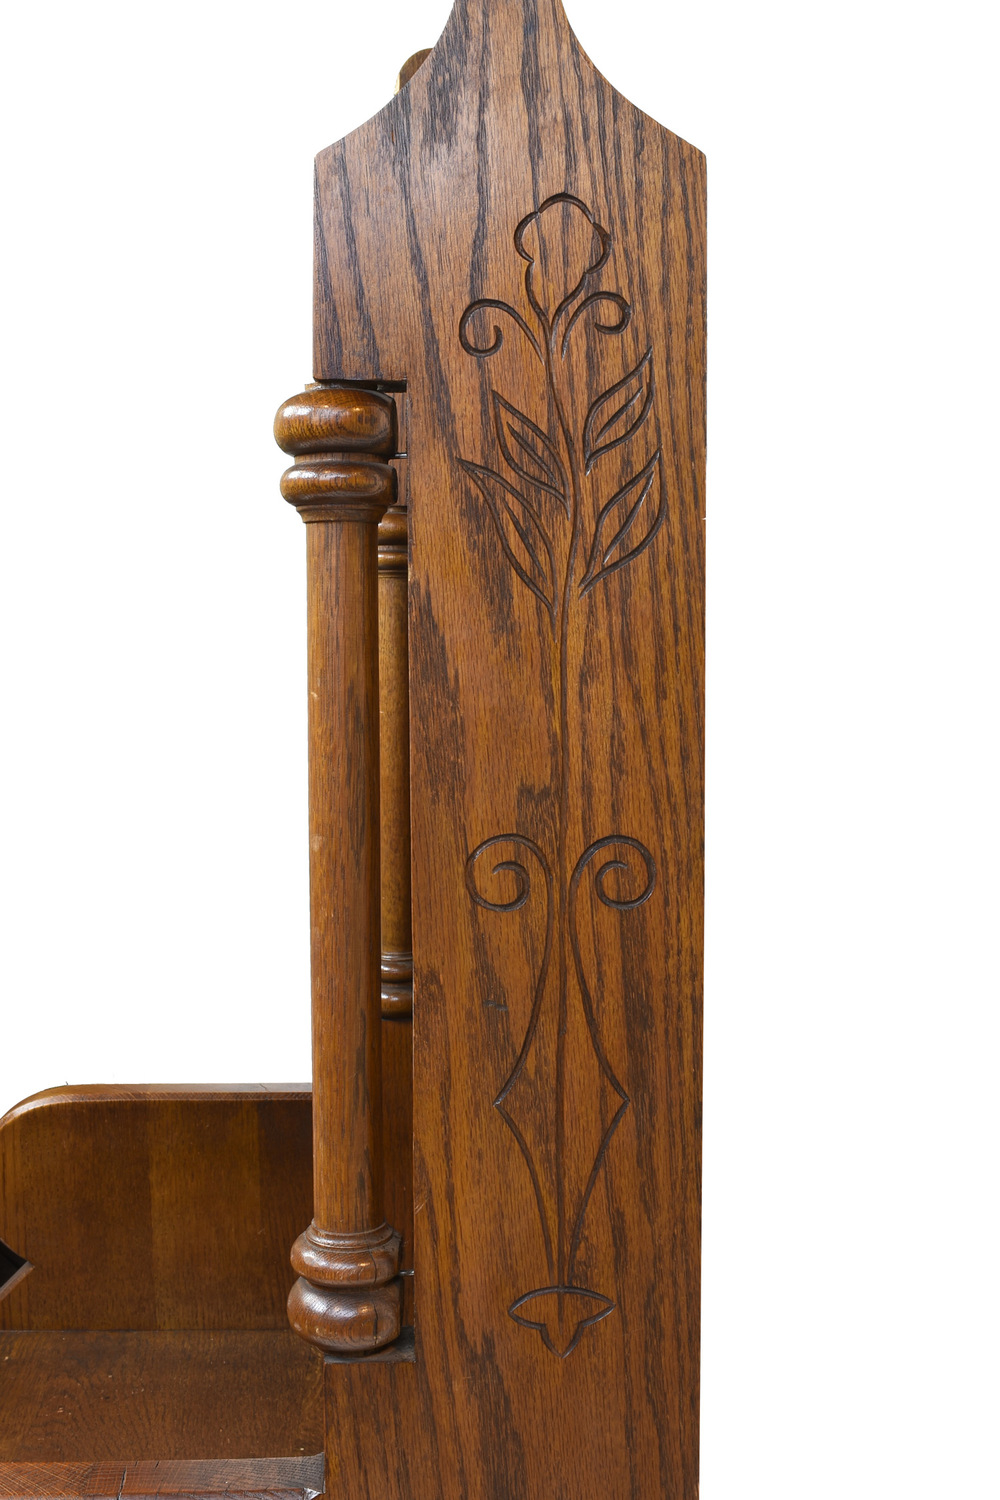 46363-small-clergy-chair-with-carved-lilies-on-side-SIDE-VIEW.jpg